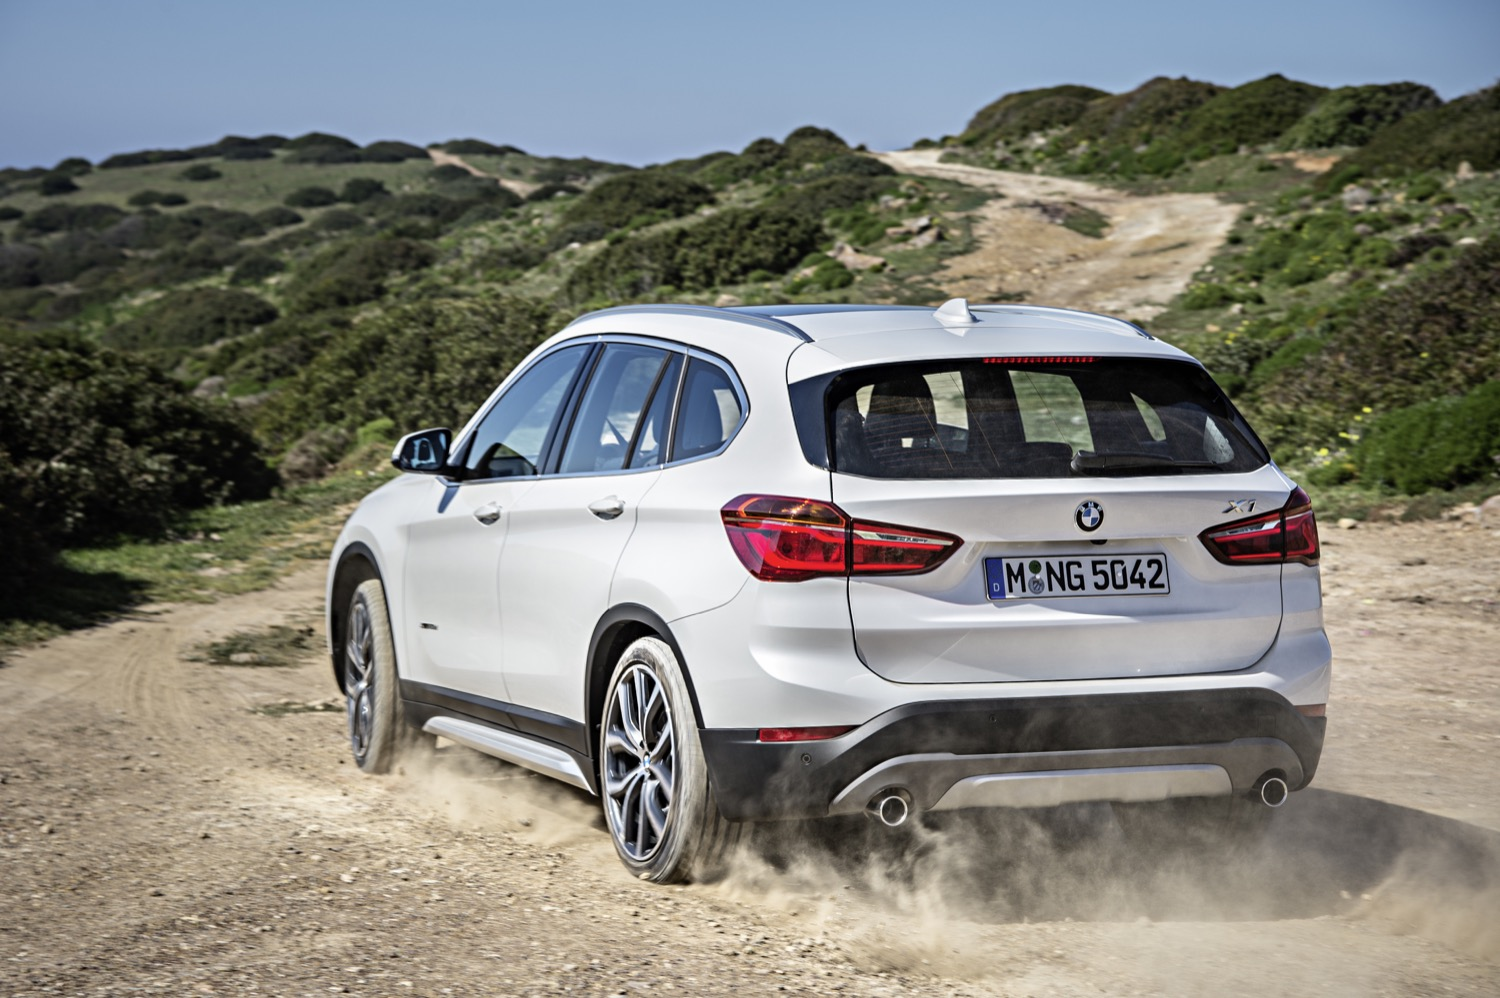 2016 Bmw X1 Motrolix